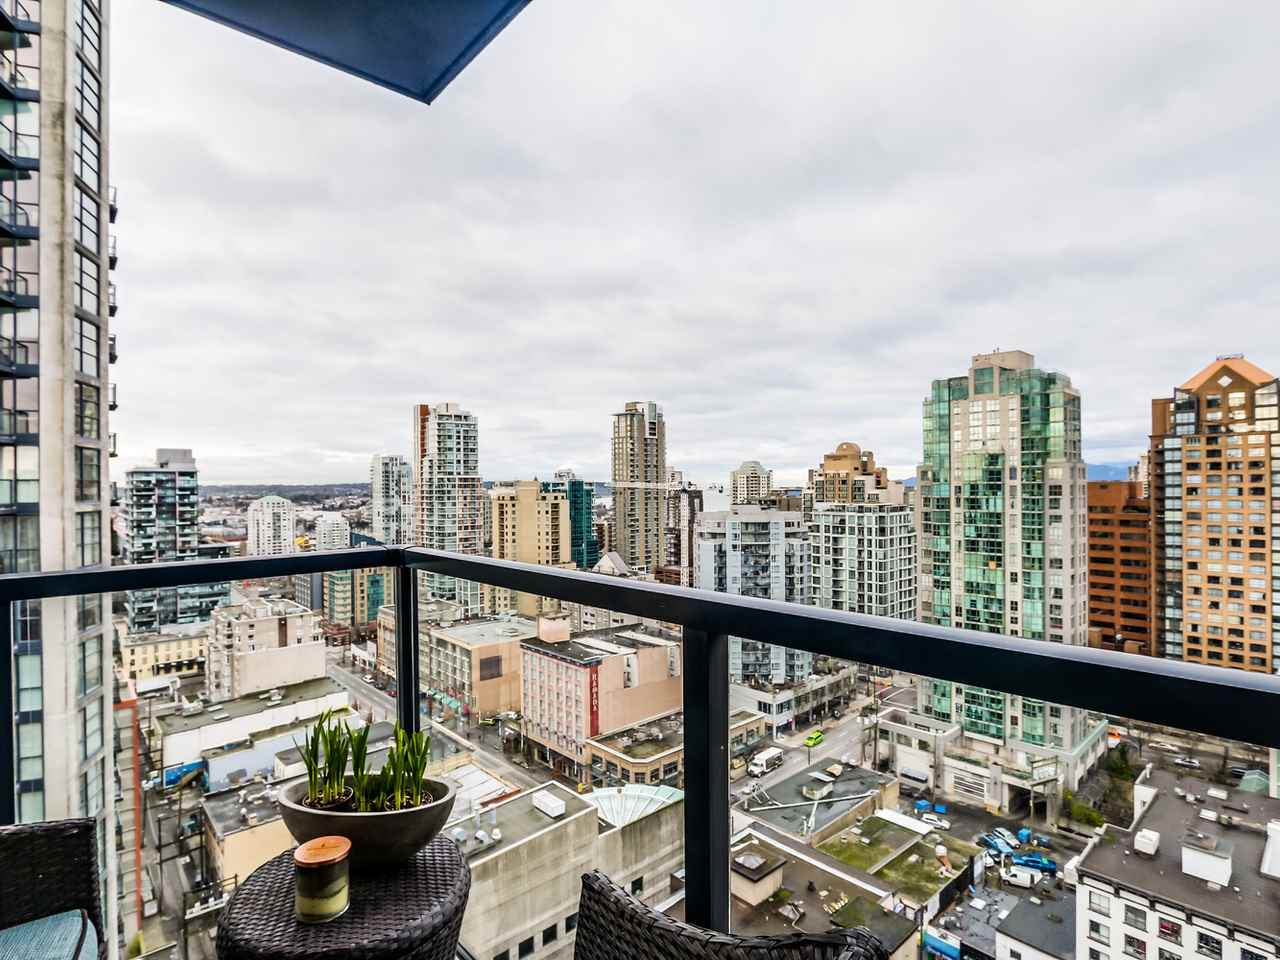 Photo 13: 2308 1155 SEYMOUR STREET in Vancouver: Downtown VW Condo for sale (Vancouver West)  : MLS® # R2026499